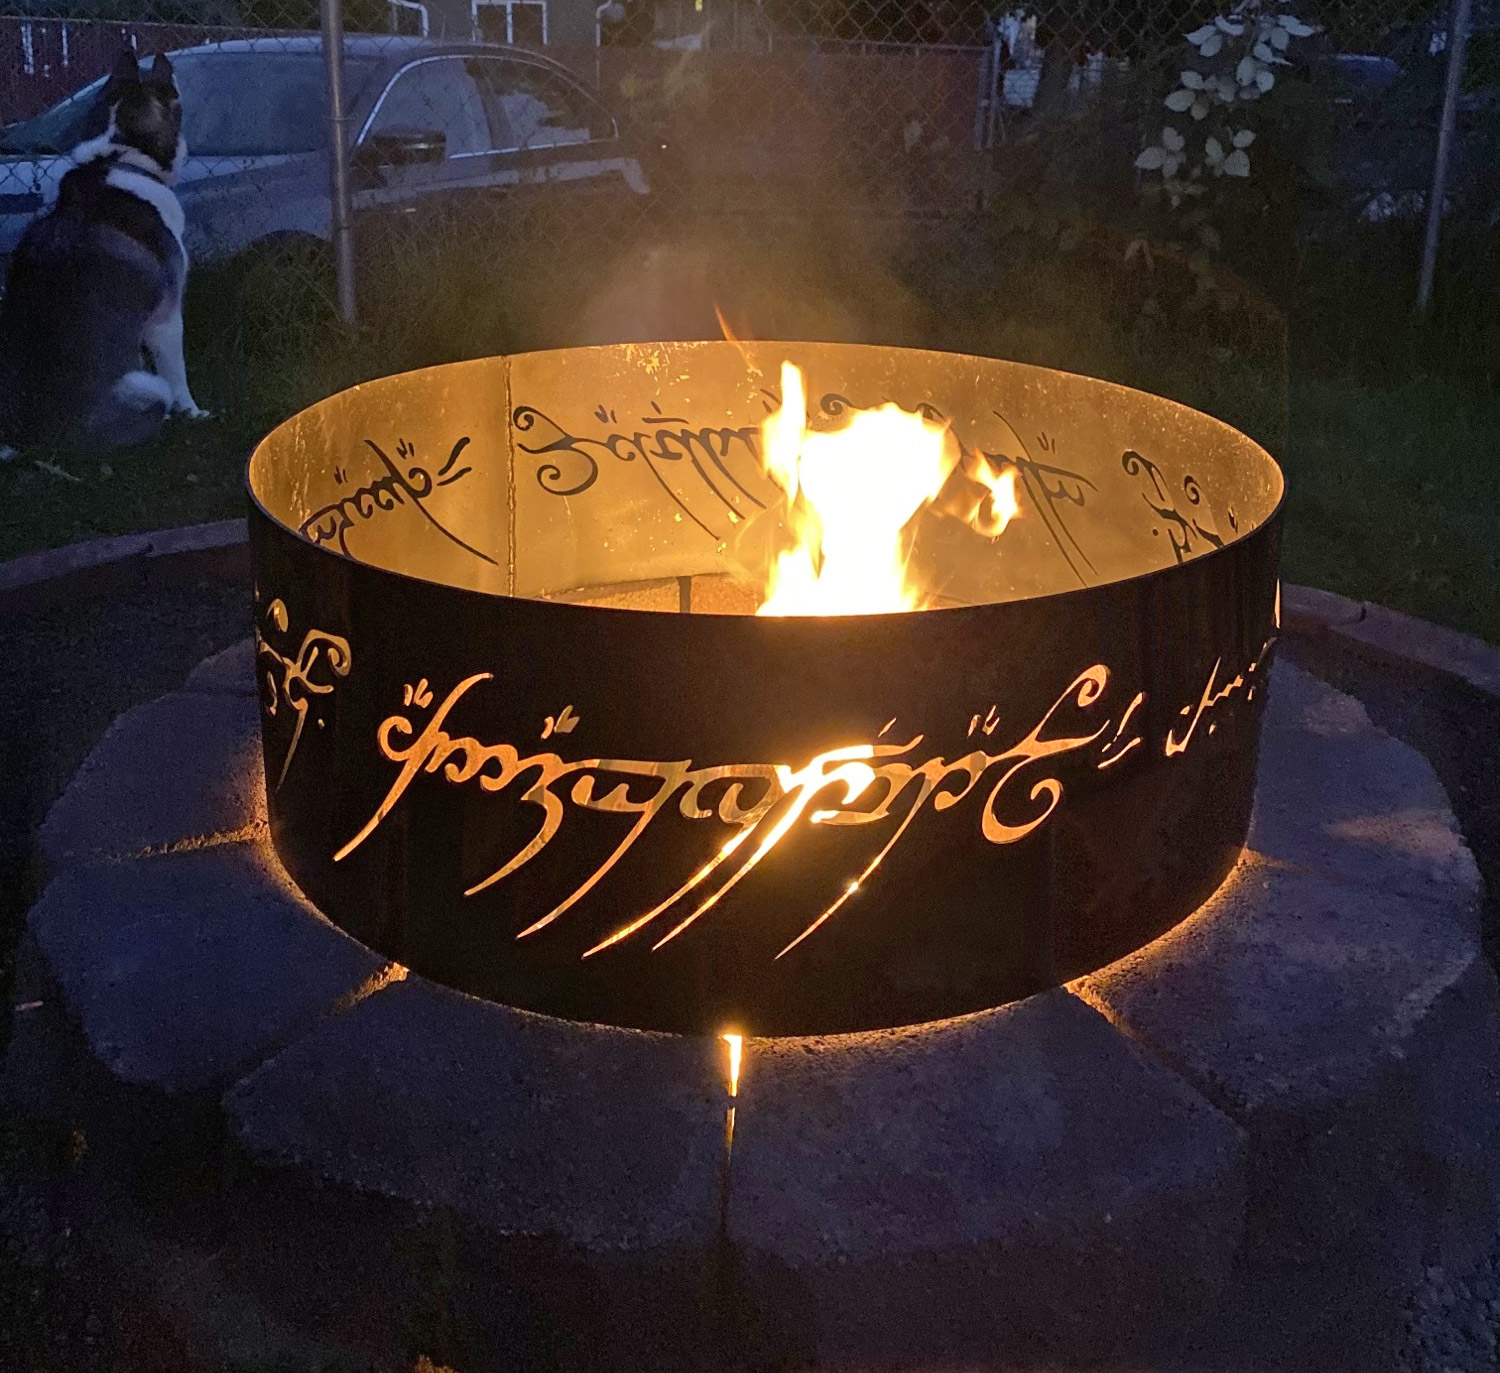 This fire pit is made to look like the One Ring from Lord Of The Rings in  that it has inscribed text on the side of the panel that is only readable  ... - Lord Of The Rings Fire Pit